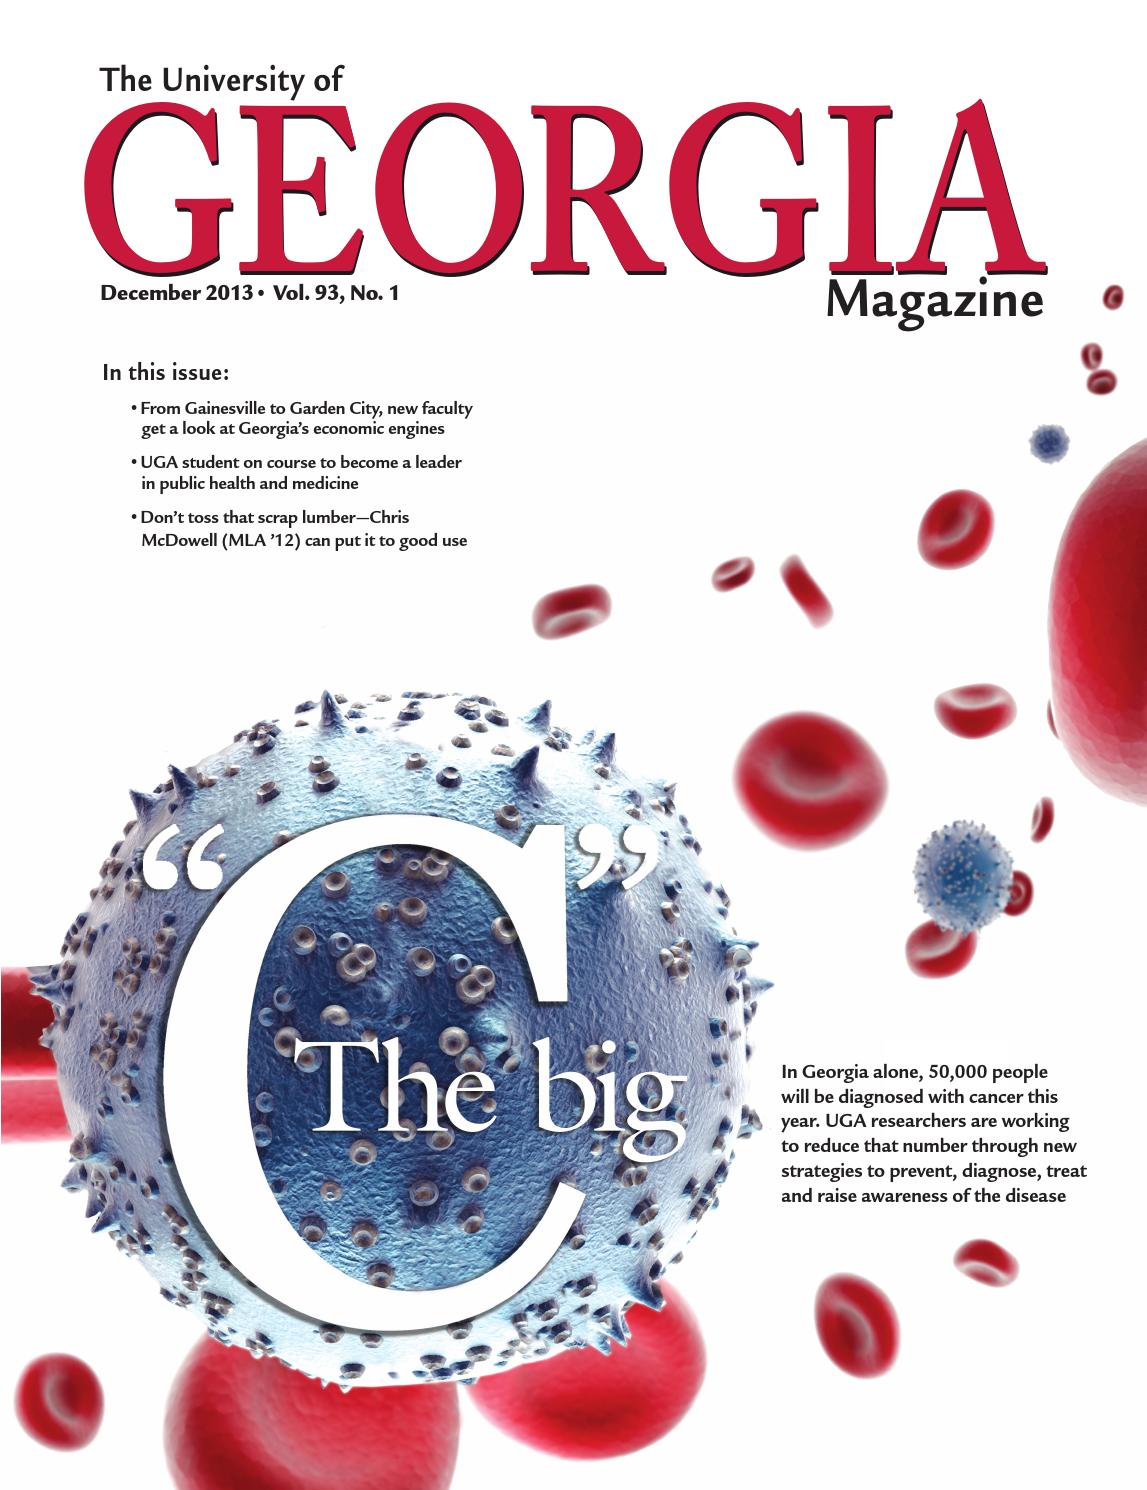 The university of georgia magazine june 2012 by university of the university of georgia magazine june 2012 by university of georgia alumni magazine issuu xflitez Image collections